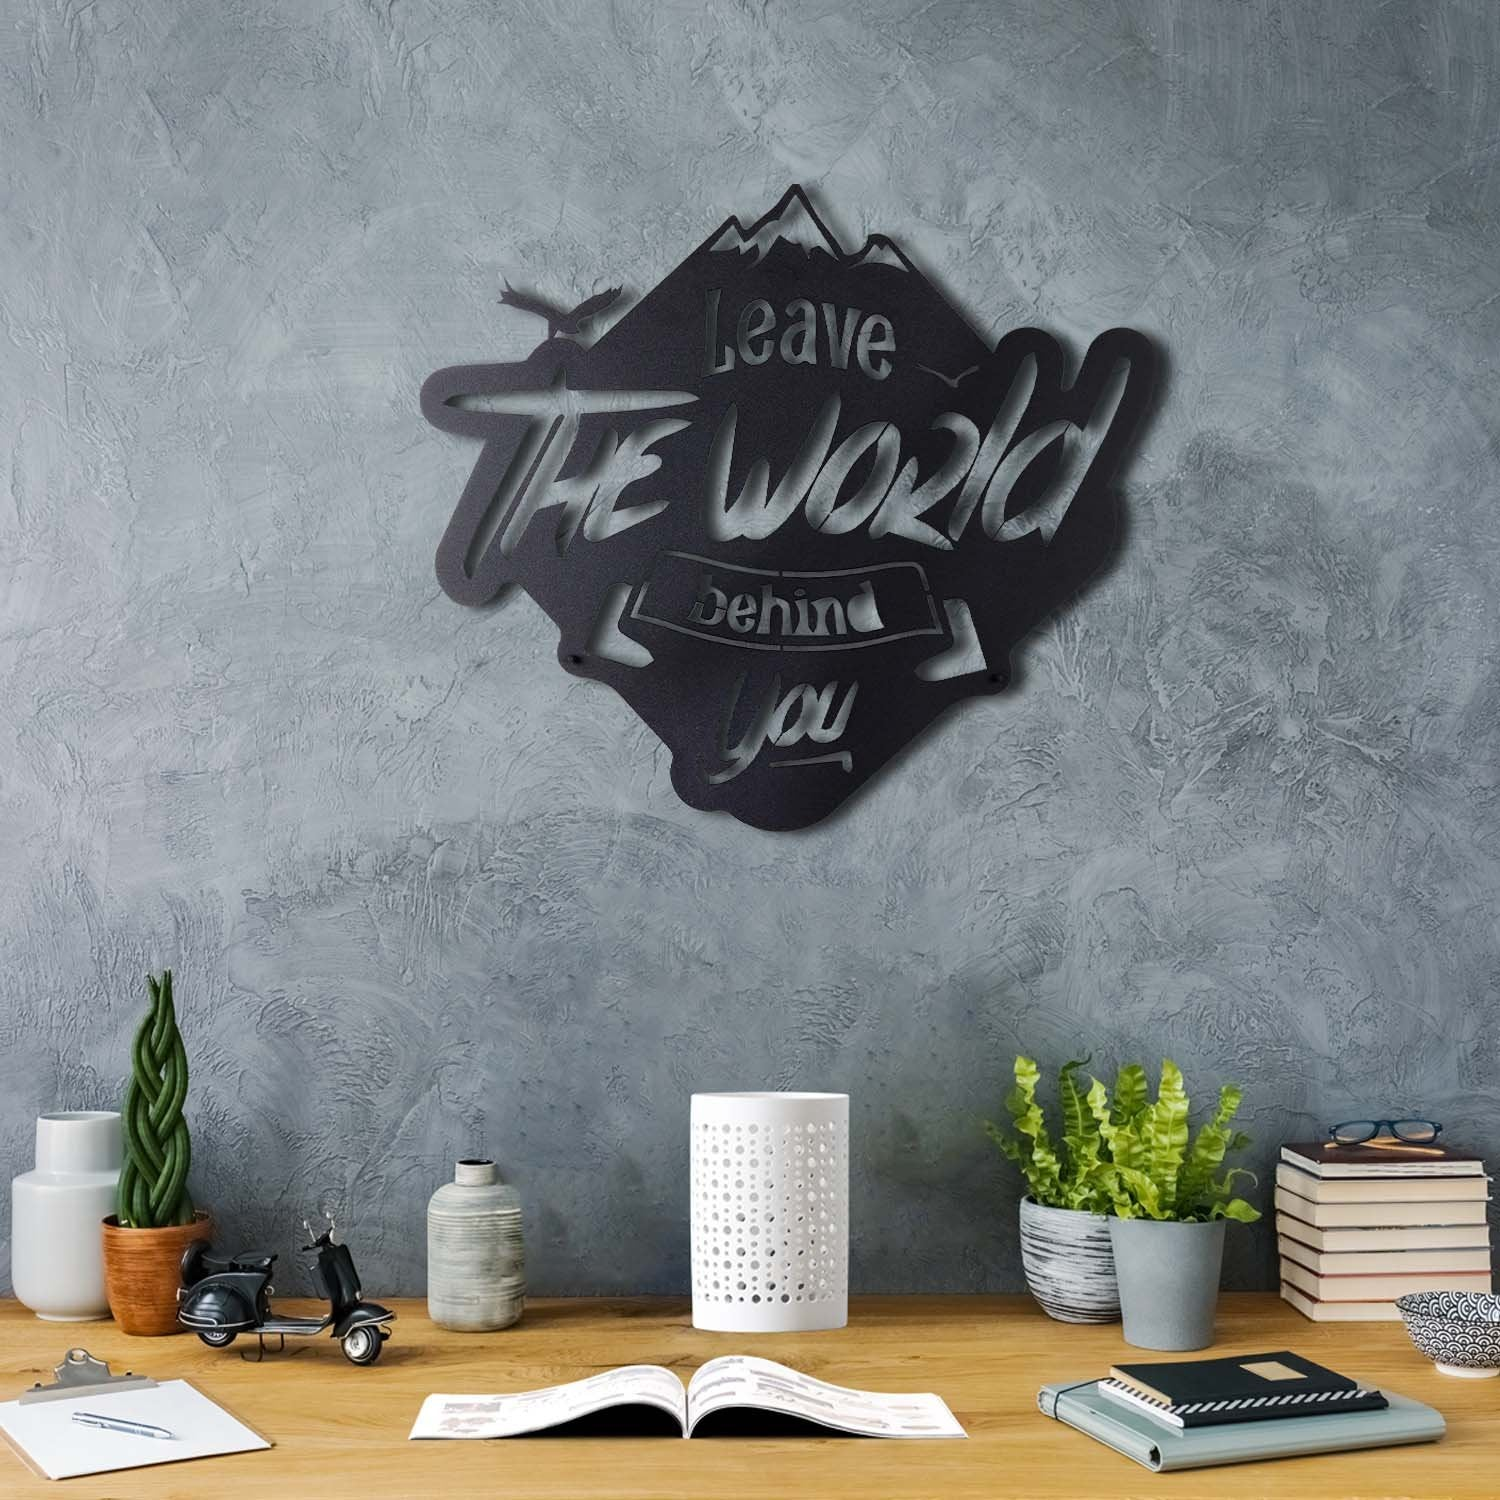 Bystag metal dekoratif duvar aksesuarı leave the world behind you- Bystag metal wall art-wall art-wall decor-metal wall decor-leave the world behind you